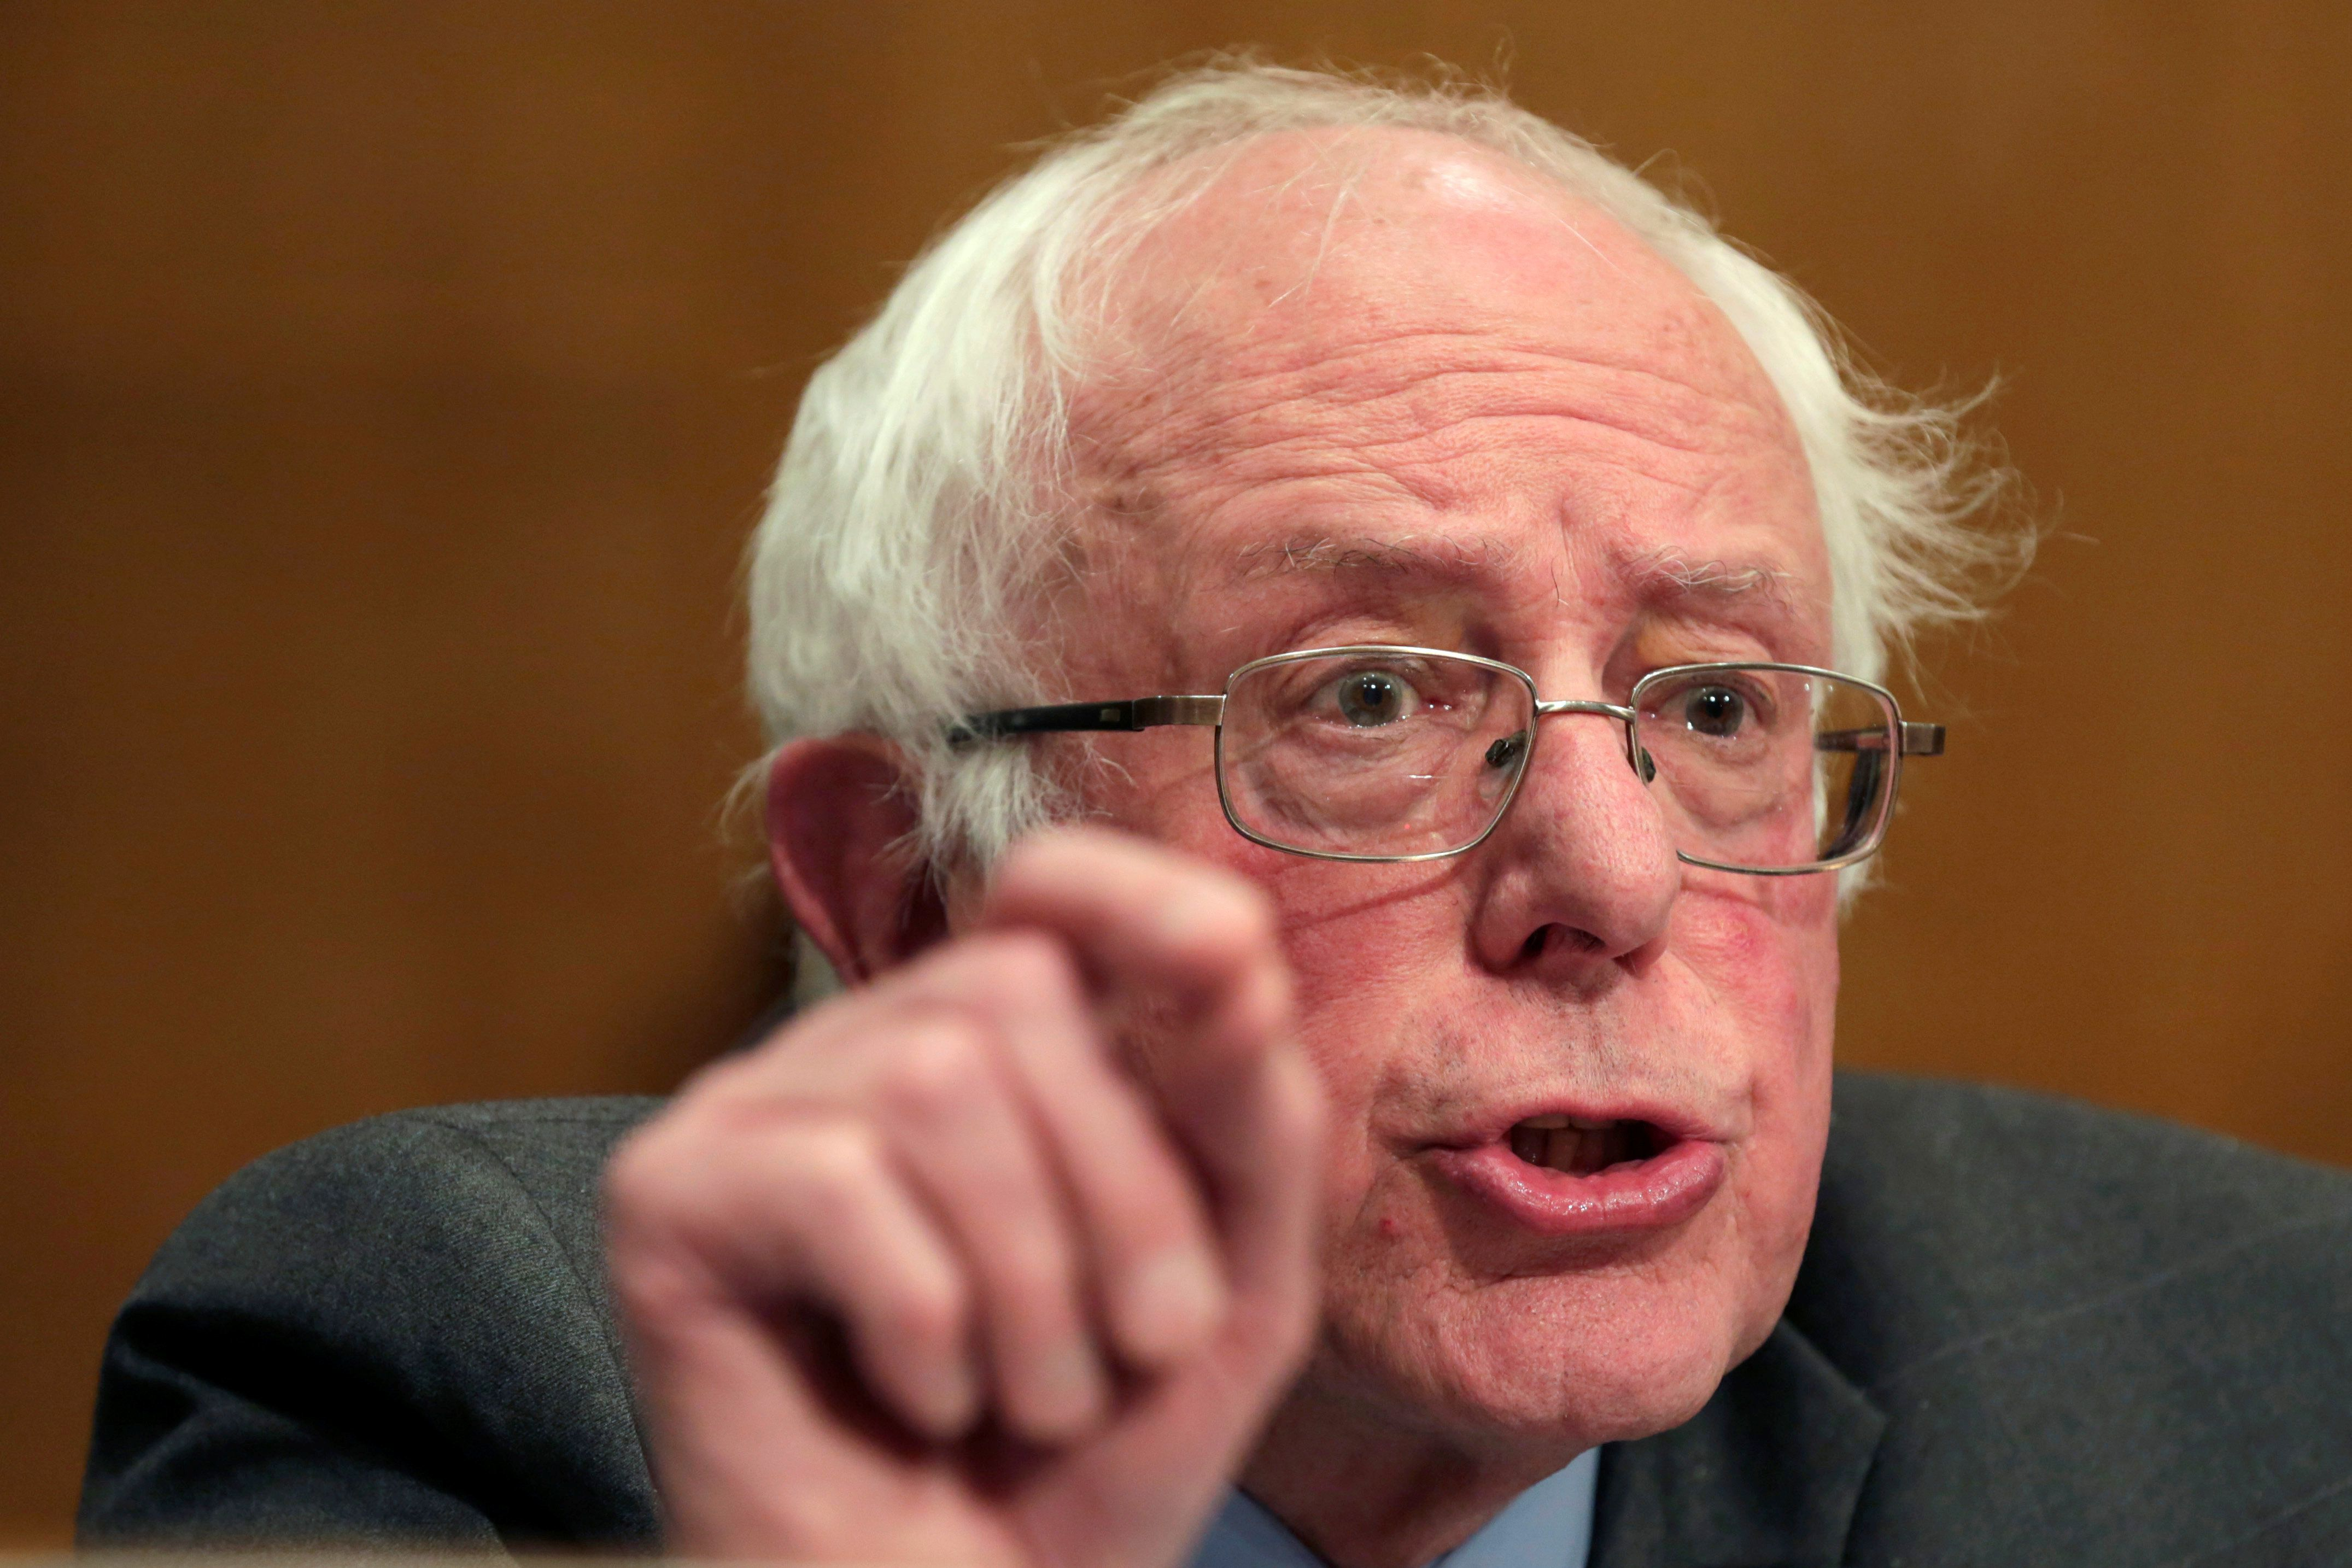 Bernie Sanders Rips Trump Nominee Who Said Muslims 'Stand